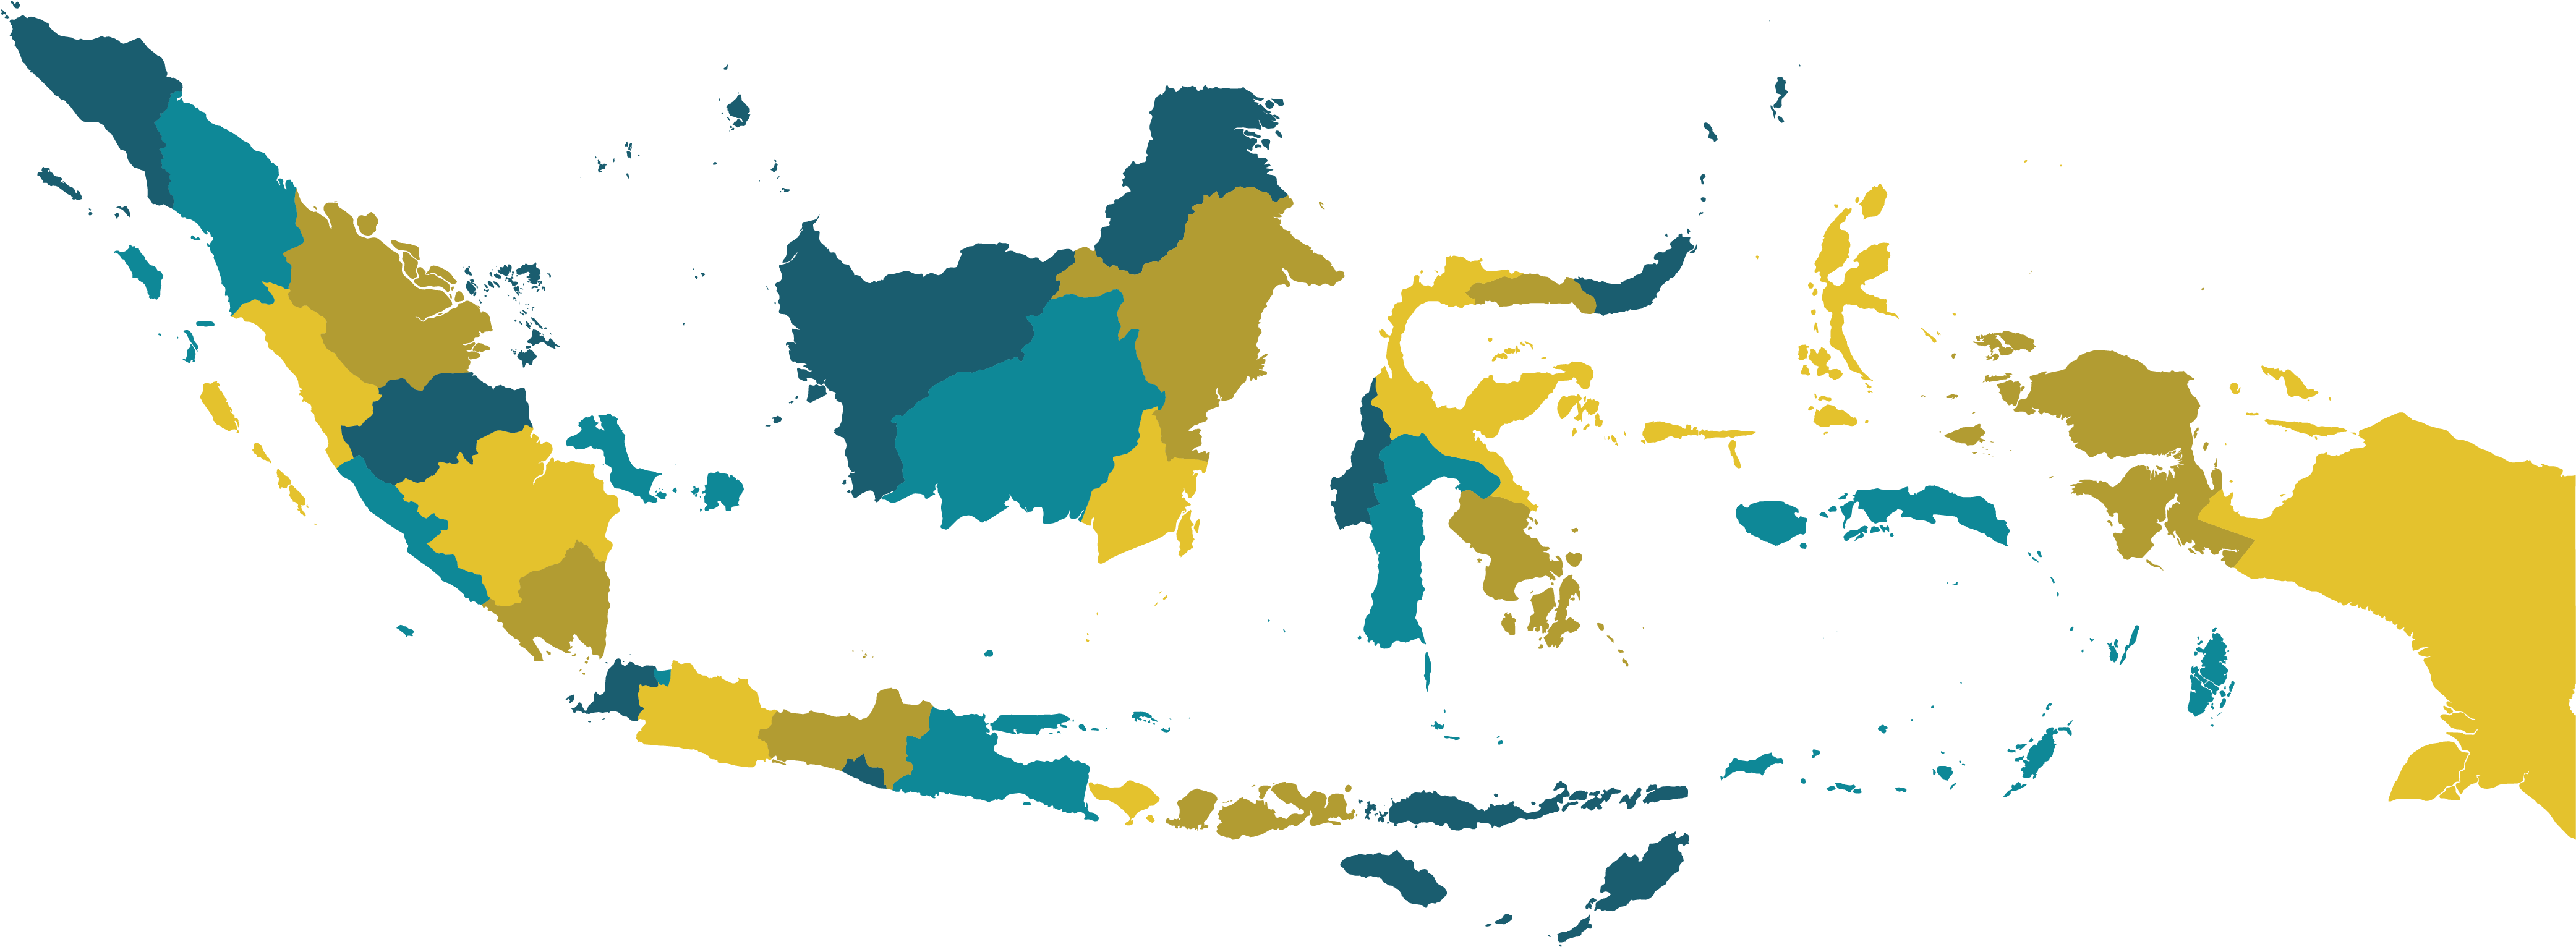 indonesia map png free indonesia map png transparent images 24269 pngio indonesia map png transparent